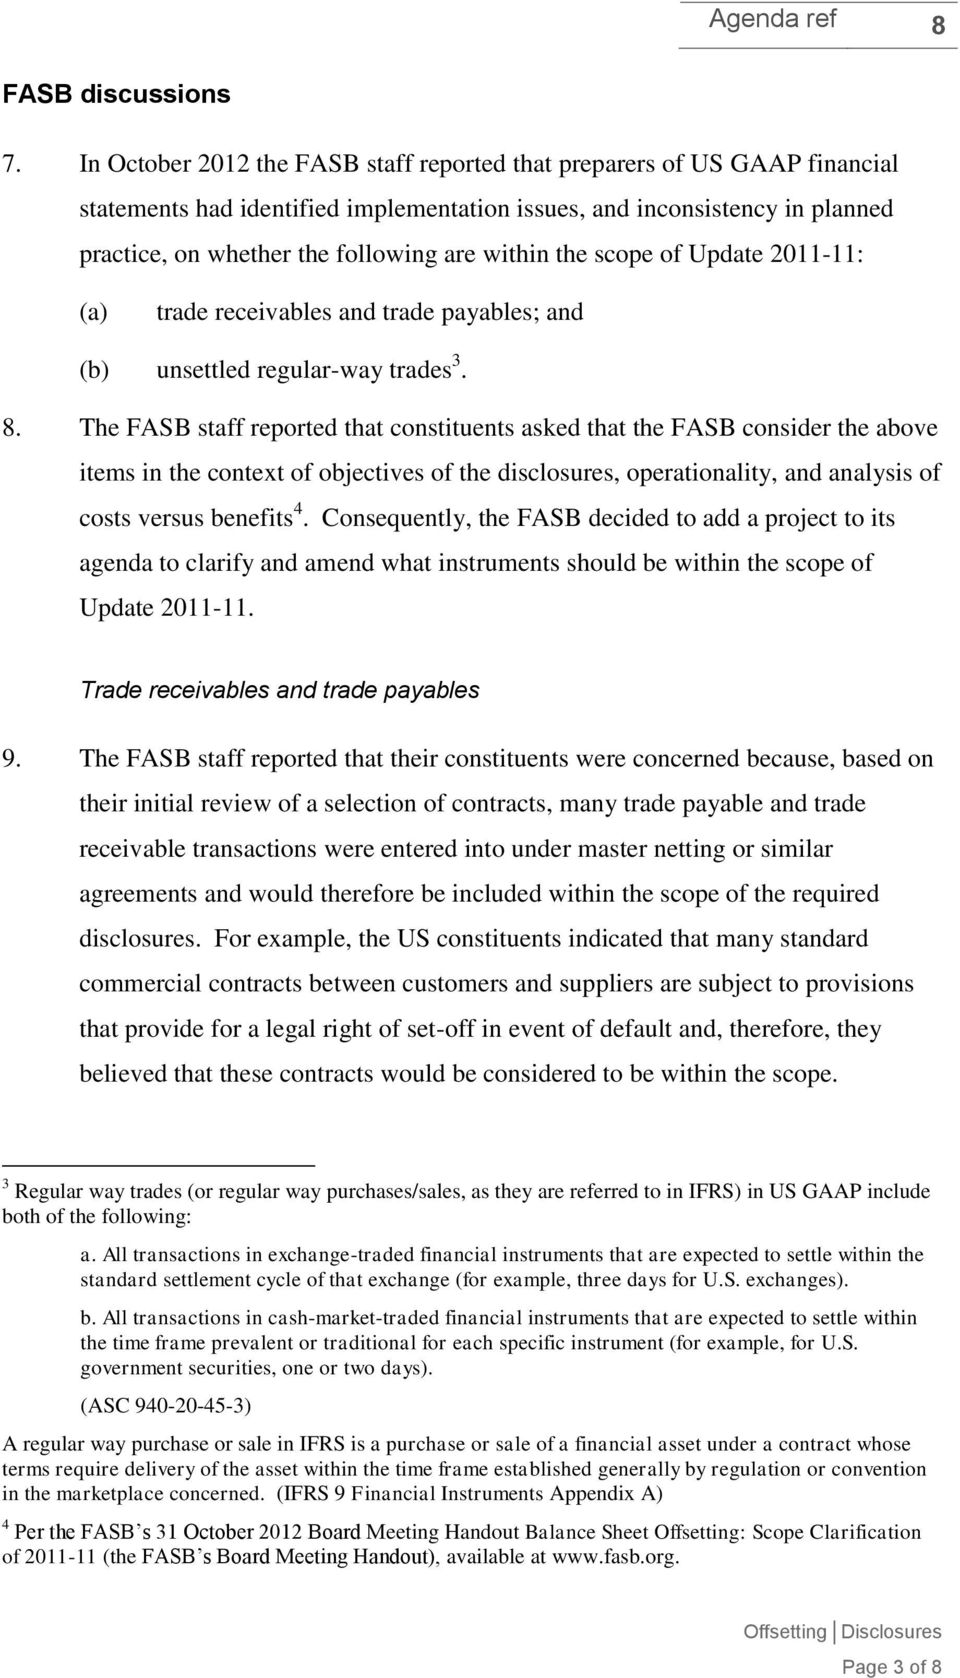 the scope of Update 2011-11: (a) trade receivables and trade payables; and (b) unsettled regular-way trades 3. 8.